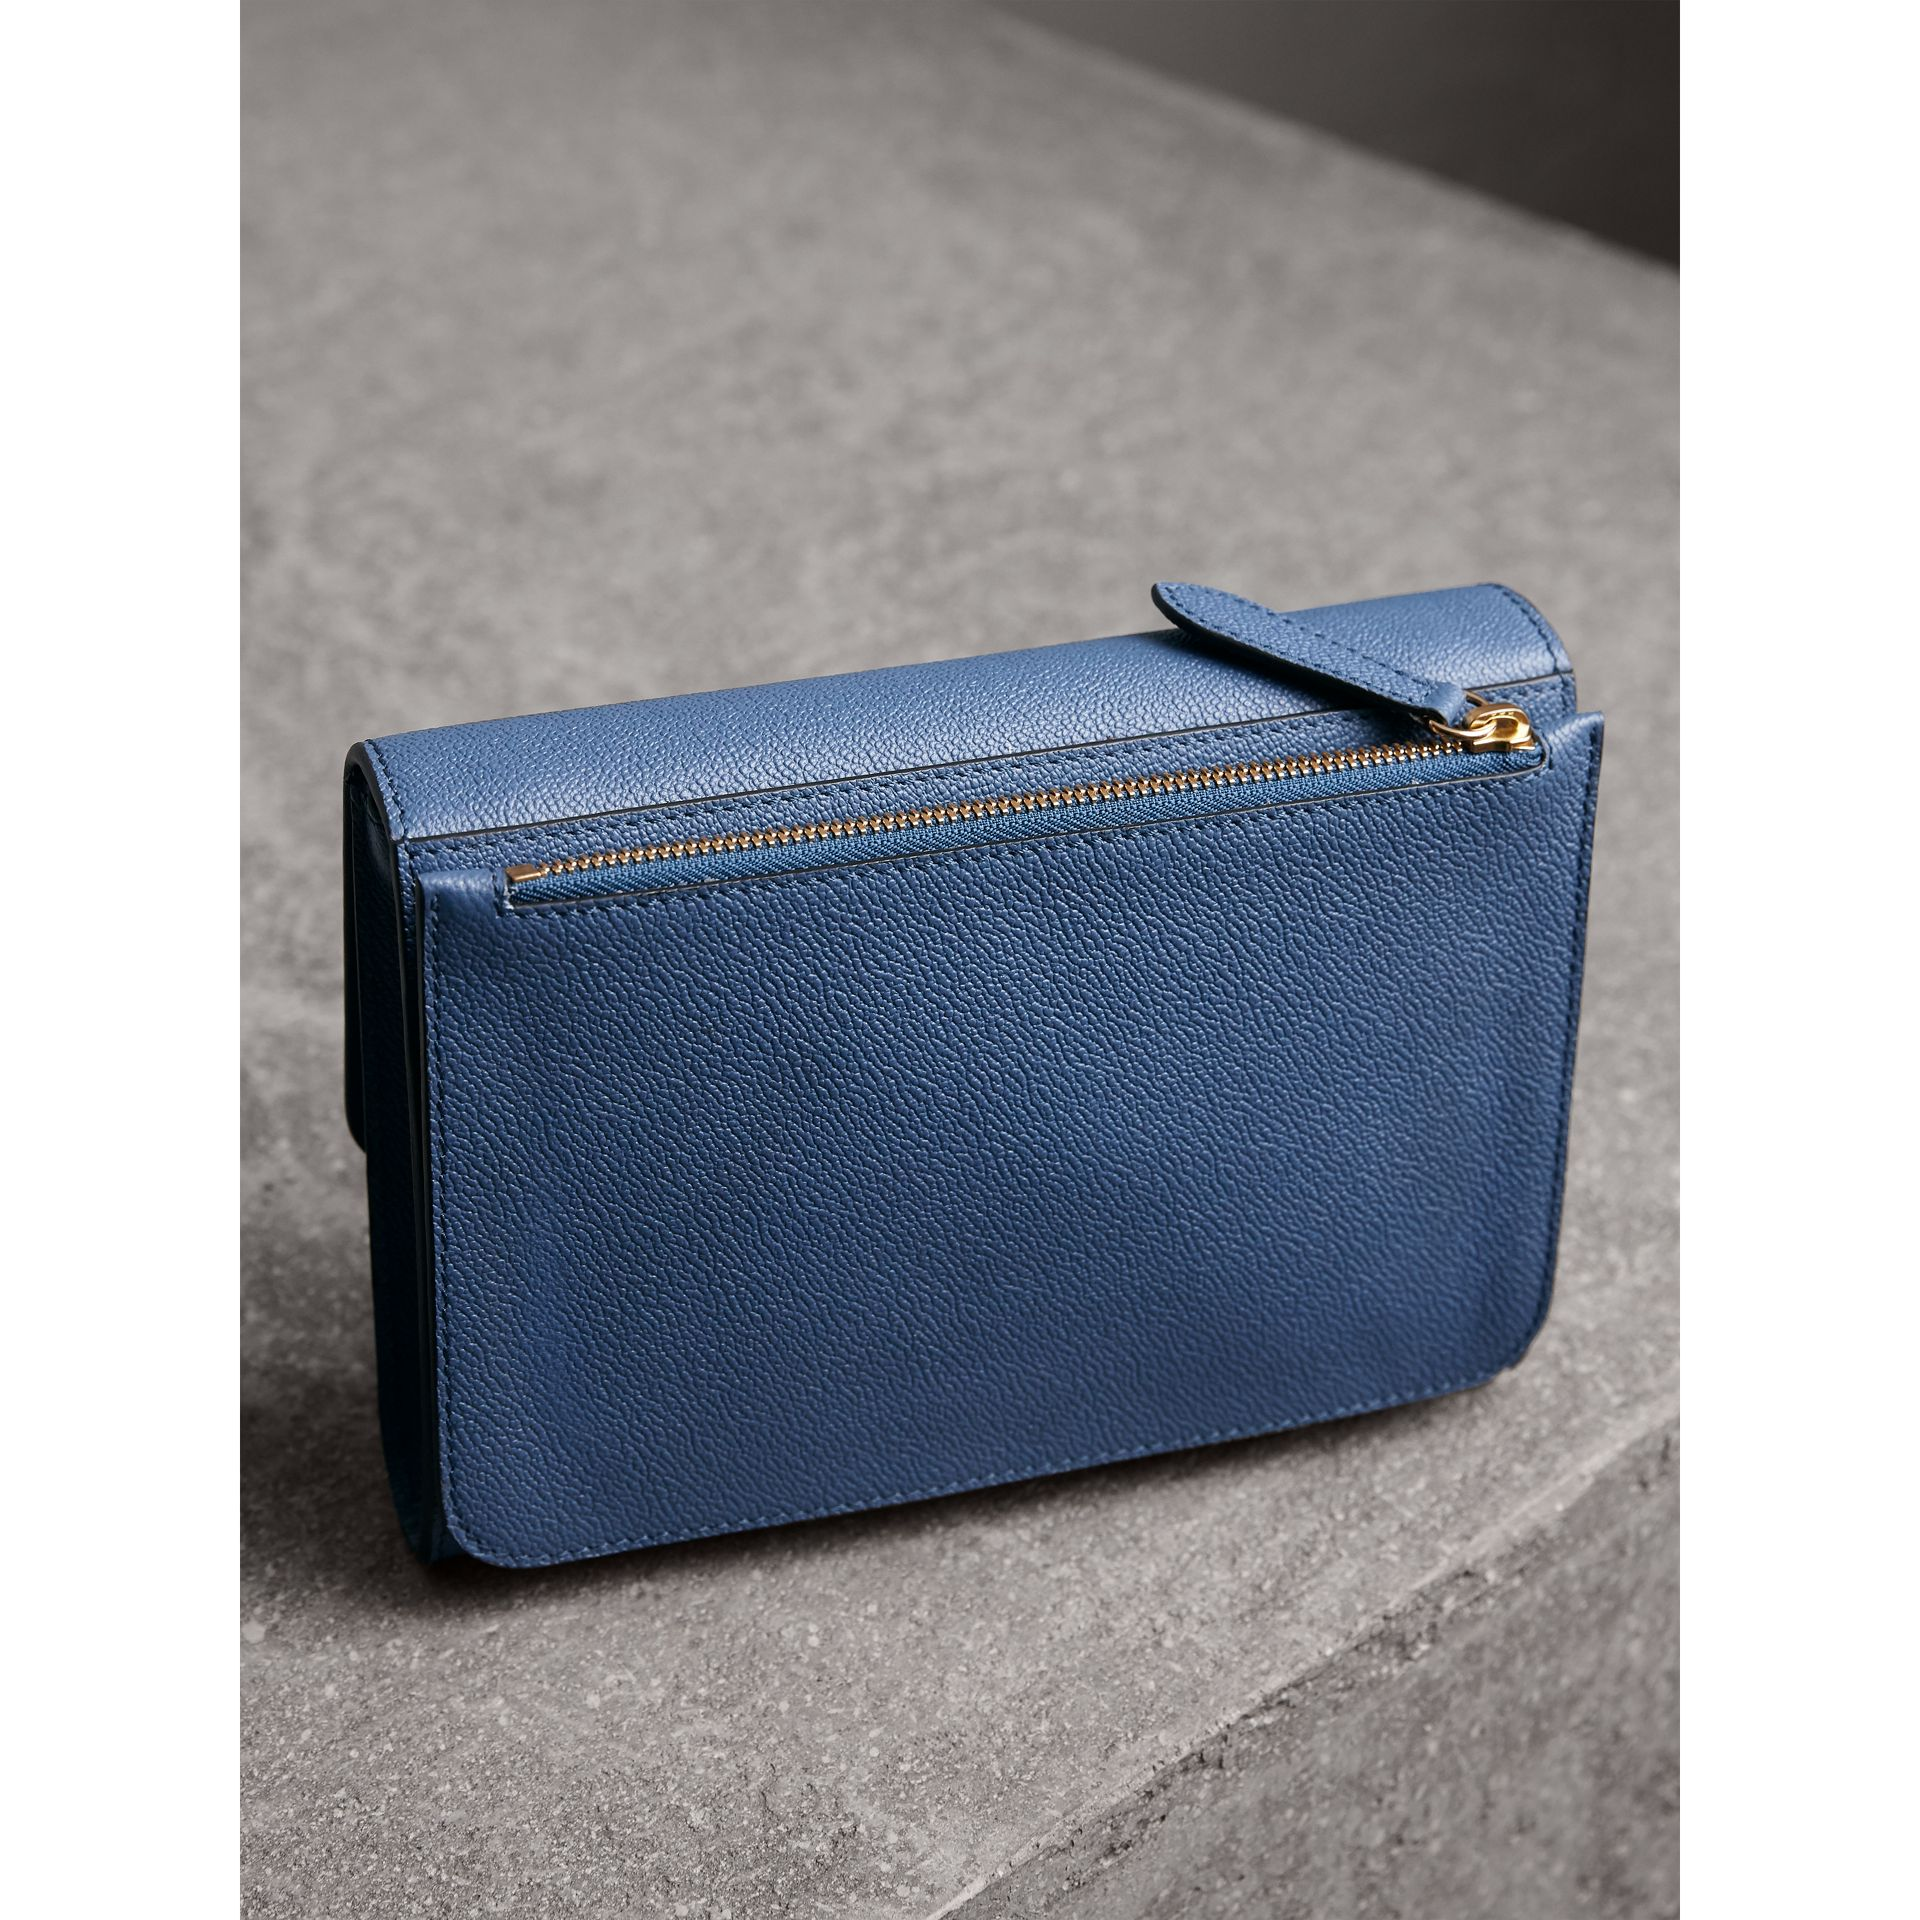 Grainy Leather Crossbody Bag in Steel Blue - Women | Burberry - gallery image 5